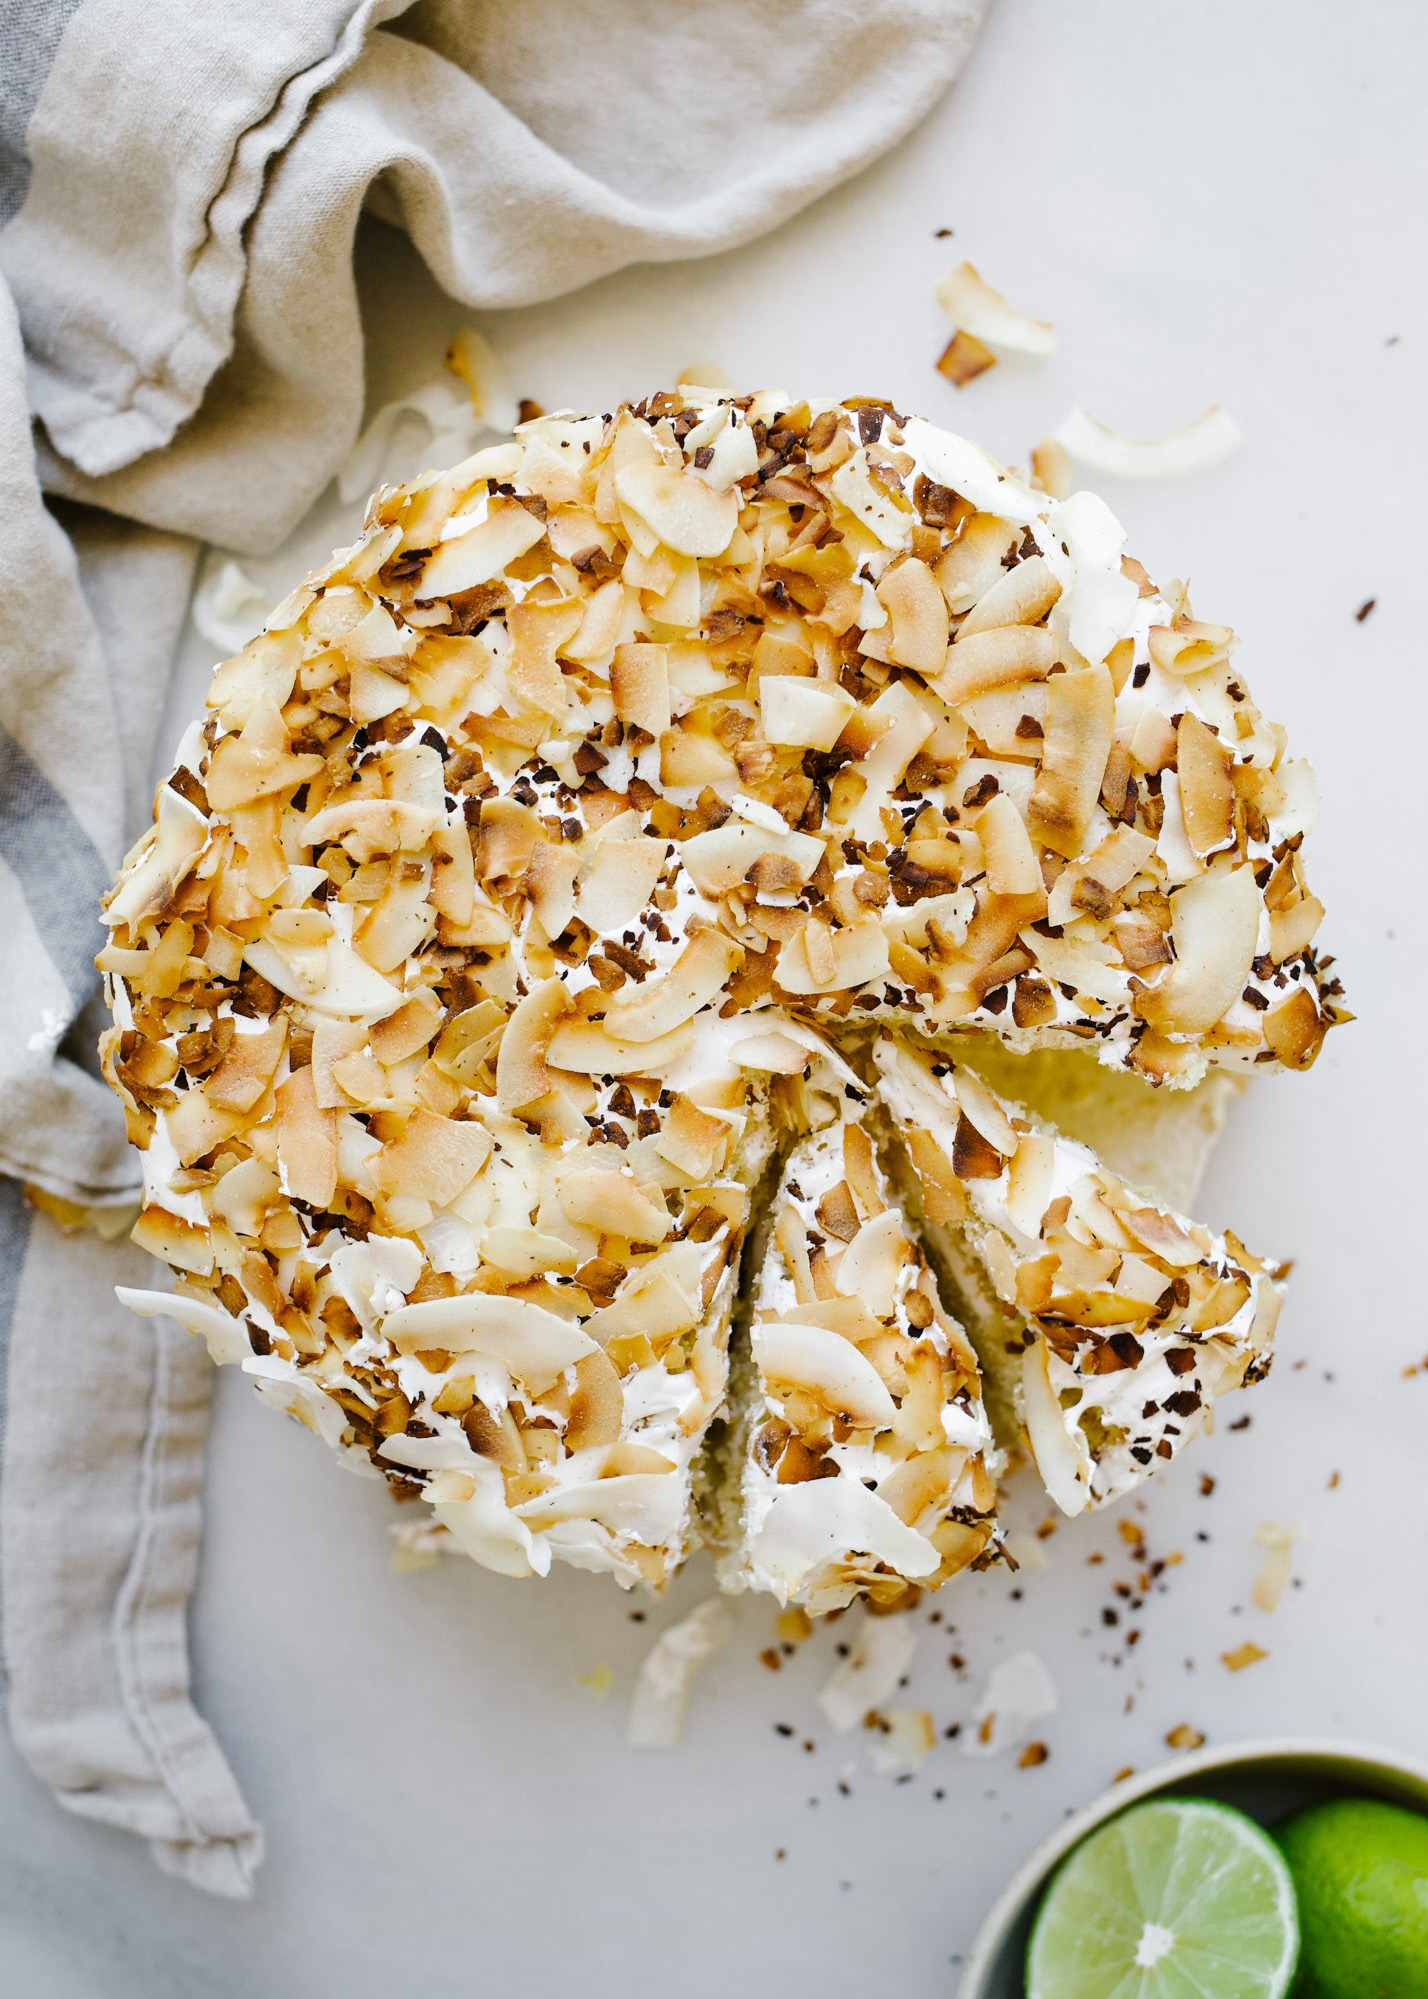 Coconut Key Lime Cake by Wood and Spoon. This is a lime zest scented fluffy butter cake with a coconut marshmallow 7 minute egg white frosting and coated in toasted flaked coconut. This cake tastes like summer but is great for spring parties and gatherings. Serve this to a crowd or try out a cream cheese coconut frosting instead! Find the recipe and learn how to make this 3 tiered layer cake on thewoodandspoon.com